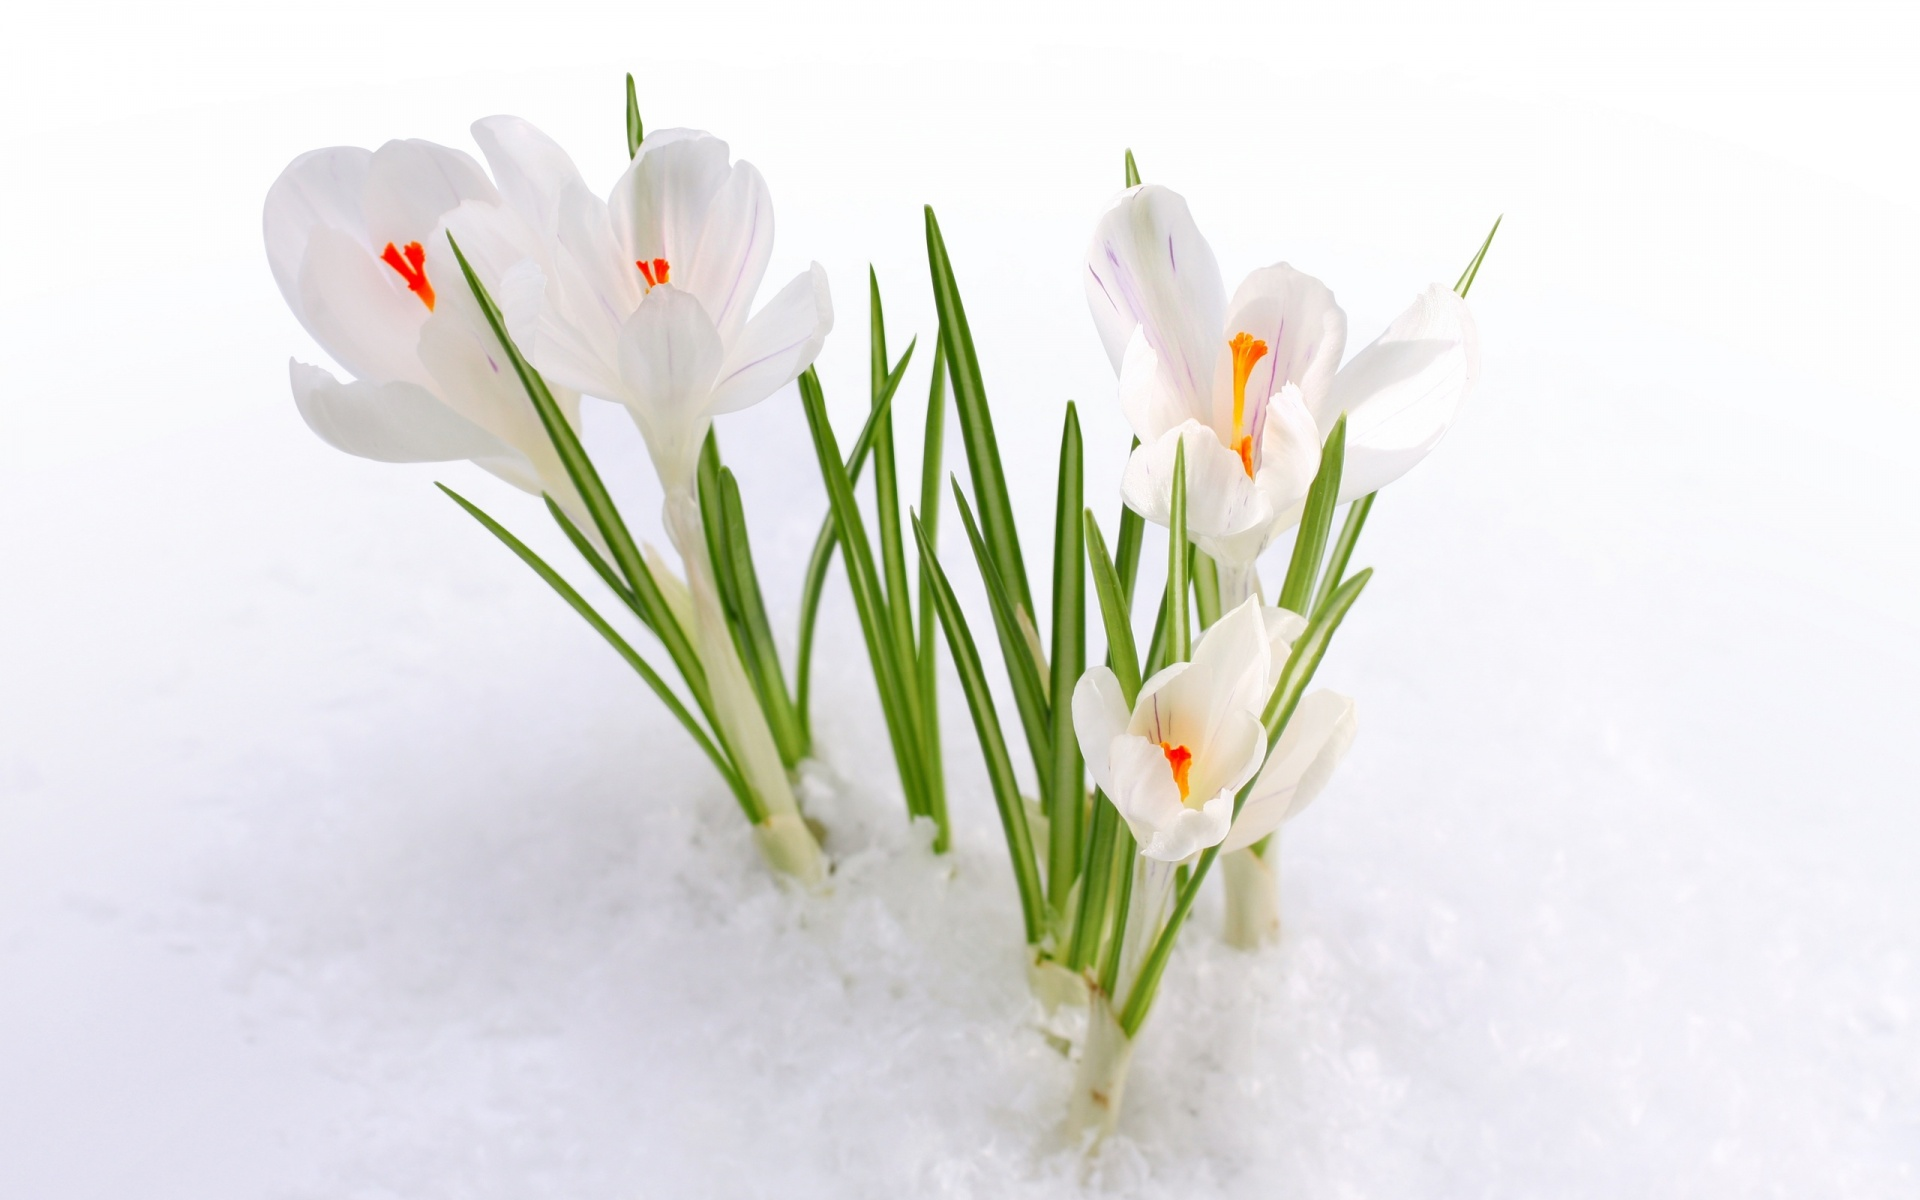 White Crocus Snow